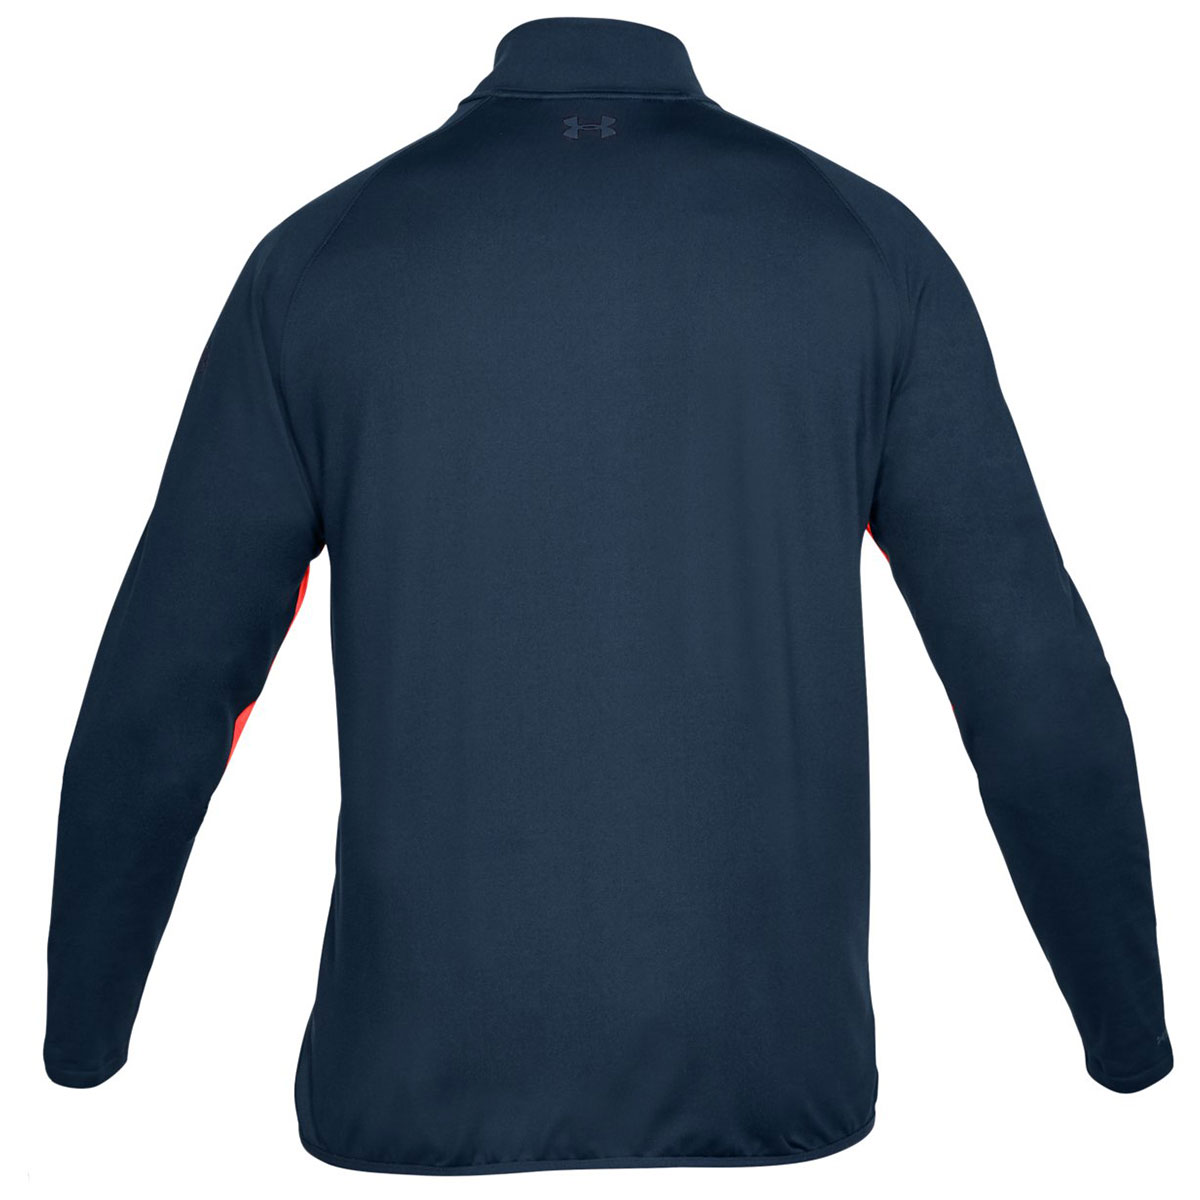 Under-Armour-Mens-Golf-1-4-Zip-Moisture-Control-Crestable-Sweater-45-OFF-RRP thumbnail 9